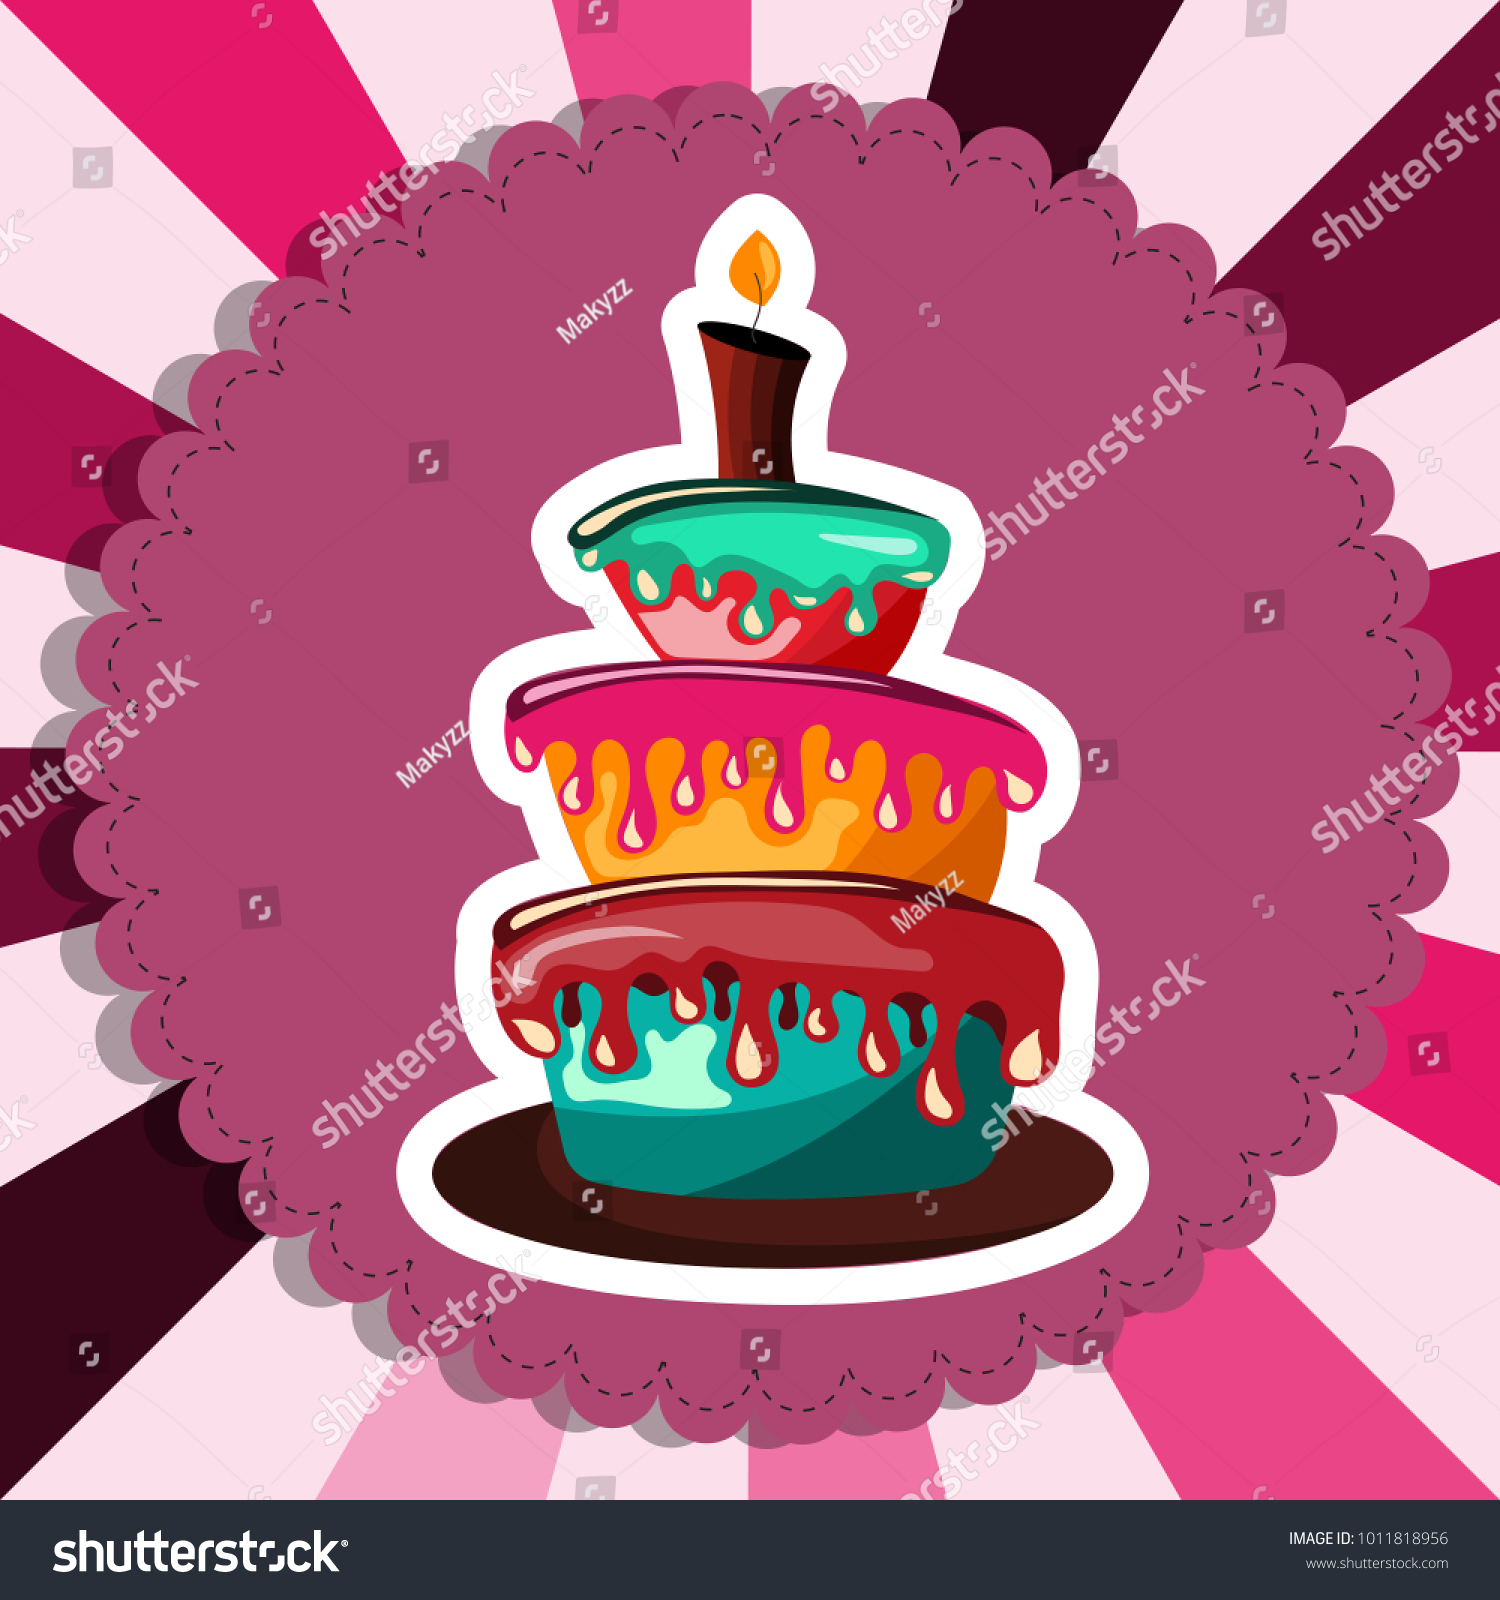 Birthday Card Cake Concept Birthdays Valentines Stock Vector